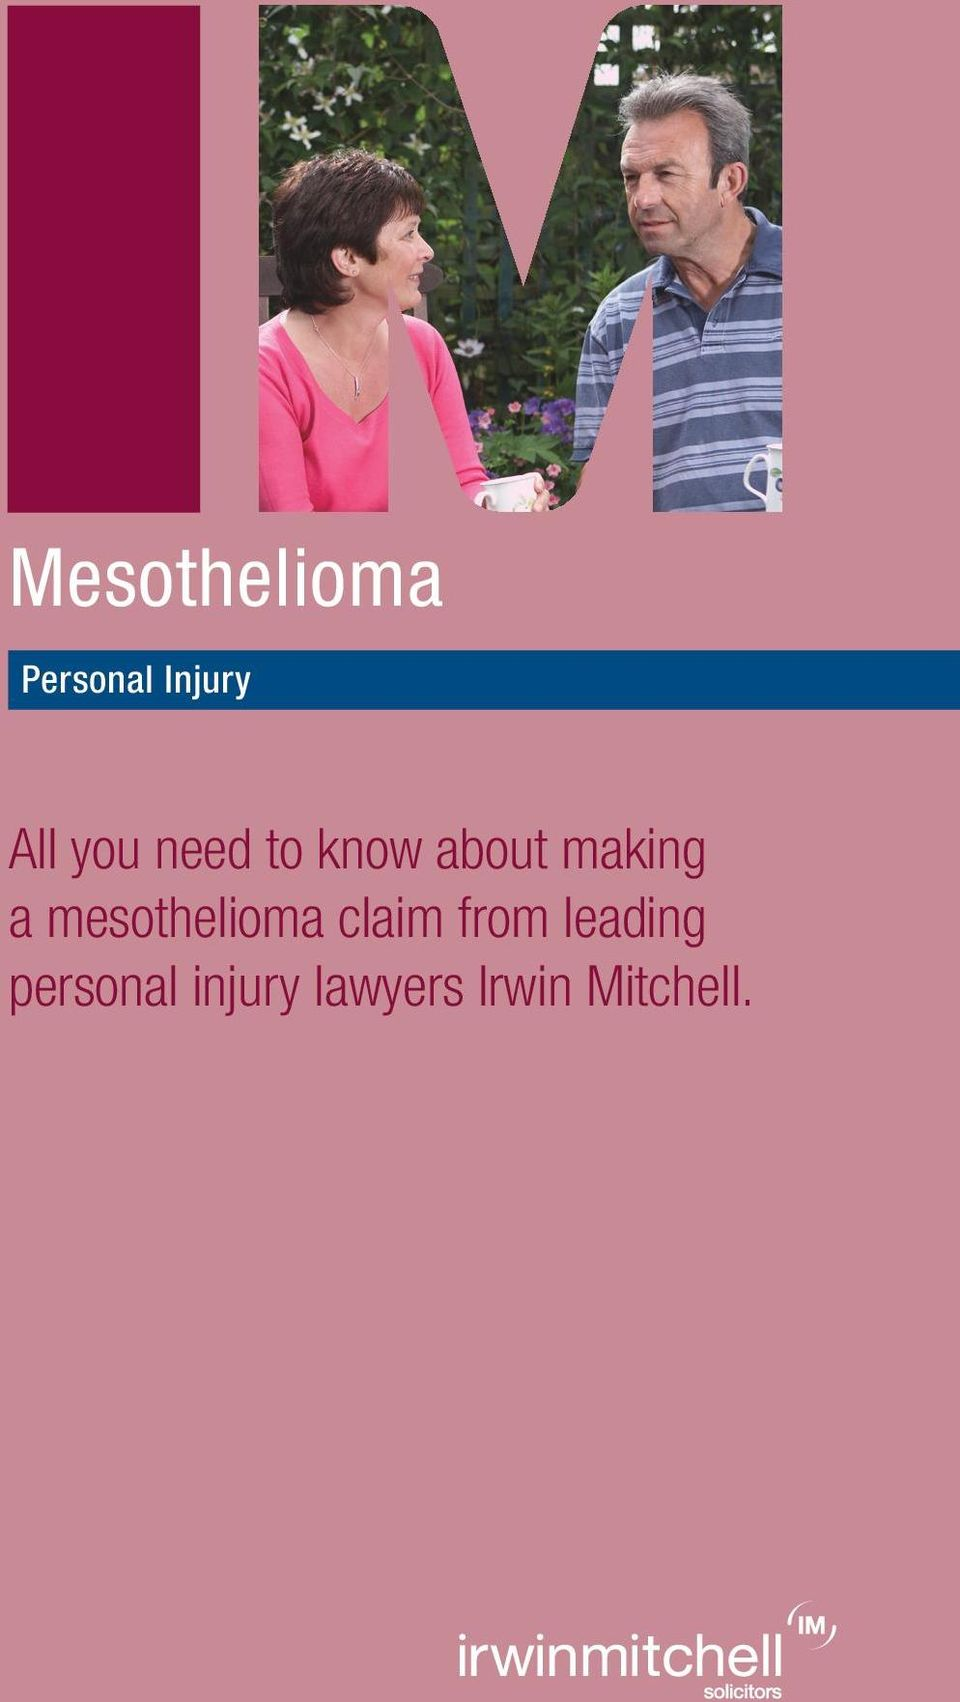 mesothelioma claim from leading